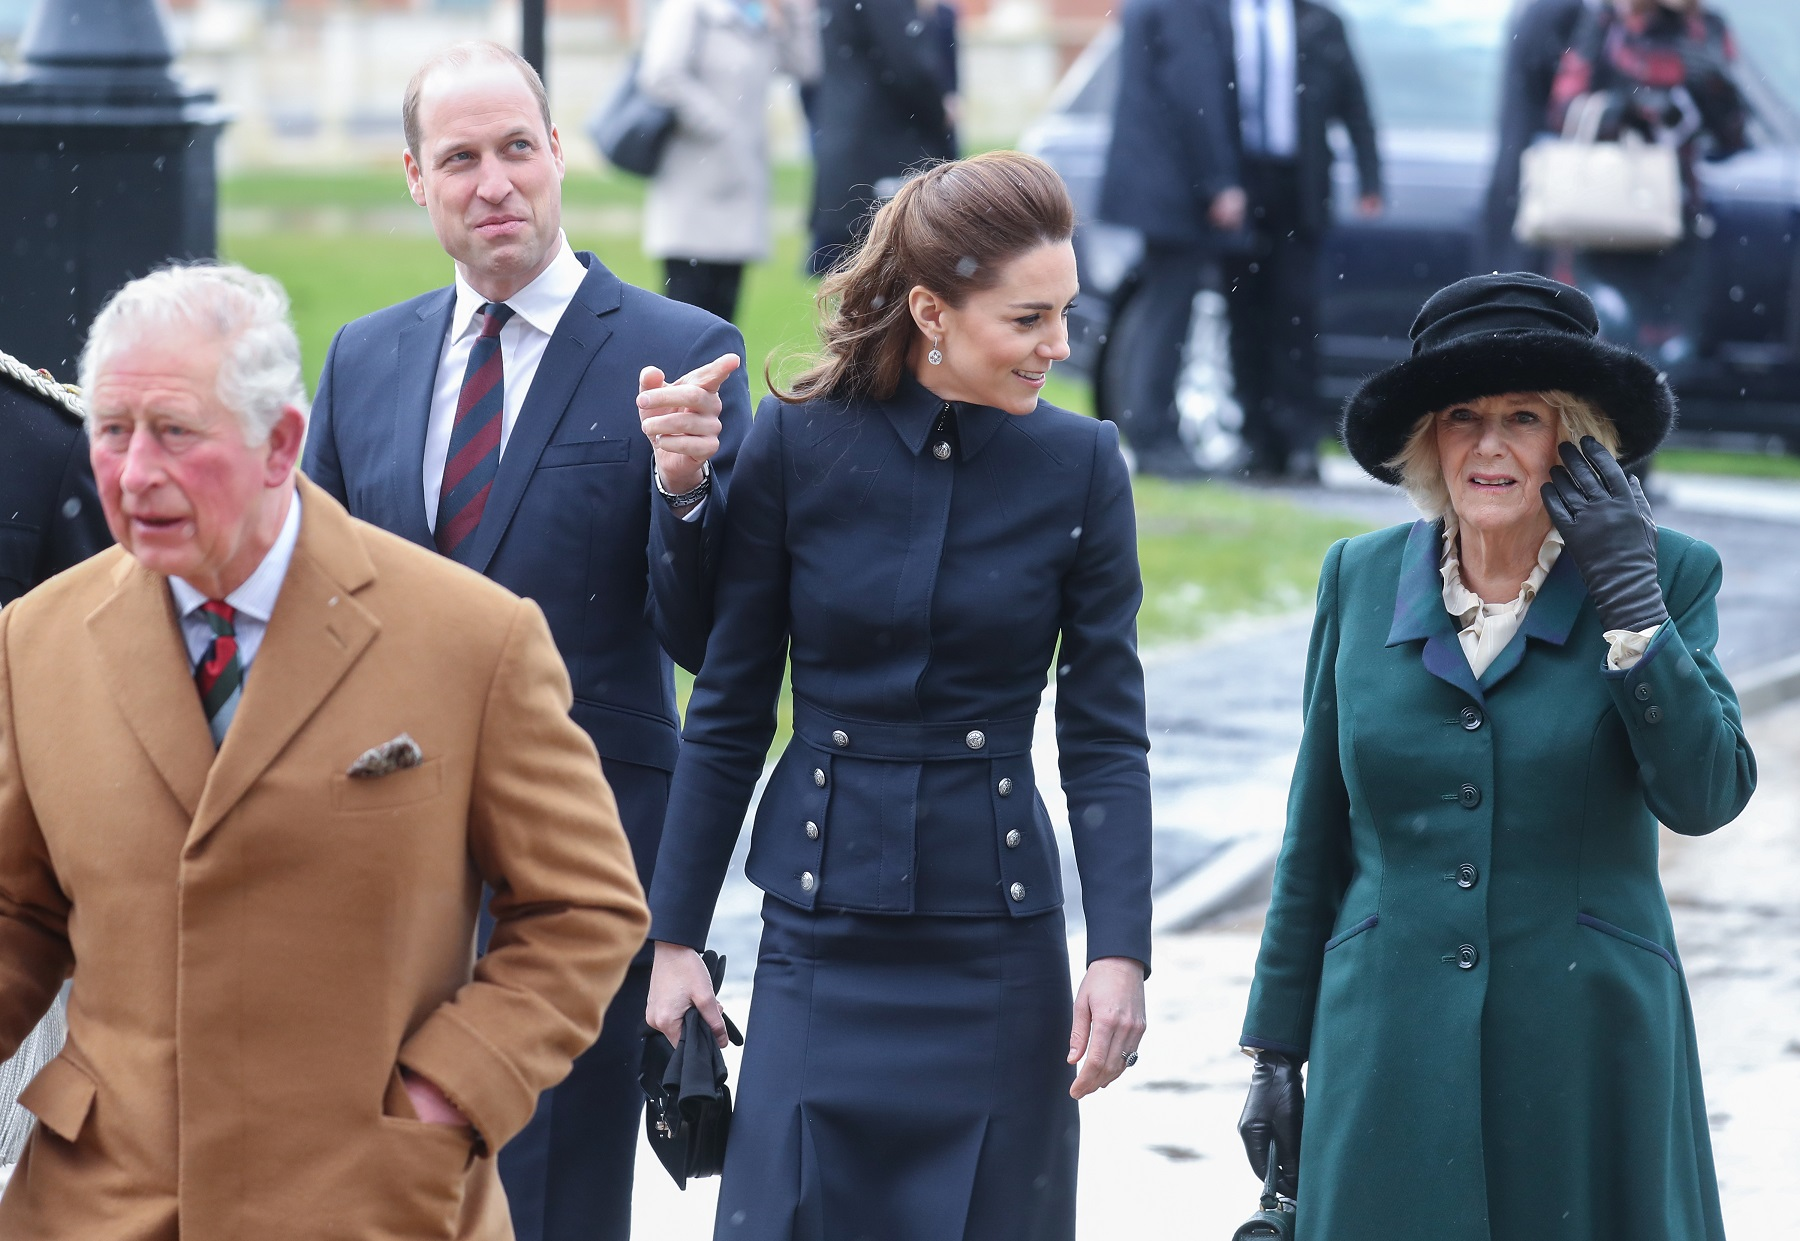 LOUGHBOROUGH, UNITED KINGDOM - FEBRUARY 11: Prince William, Duke of Cambridge, Prince Charles, Prince of Wales, Catherine, Duchess of Cambridge and Camilla, Duchess of Cornwall arrive at the Defence Medical Rehabilitation Centre, Stanford Hall on February 11, 2020 in Loughborough, United Kingdom. Known as 'DMRC Stanford Hall', the centre is operated by the MOD and began admitting patients in October 2018. They deliver in-patient and residential rehabilitation to serving members of the Armed Forces. (Photo by Chris Jackson/Getty Images)